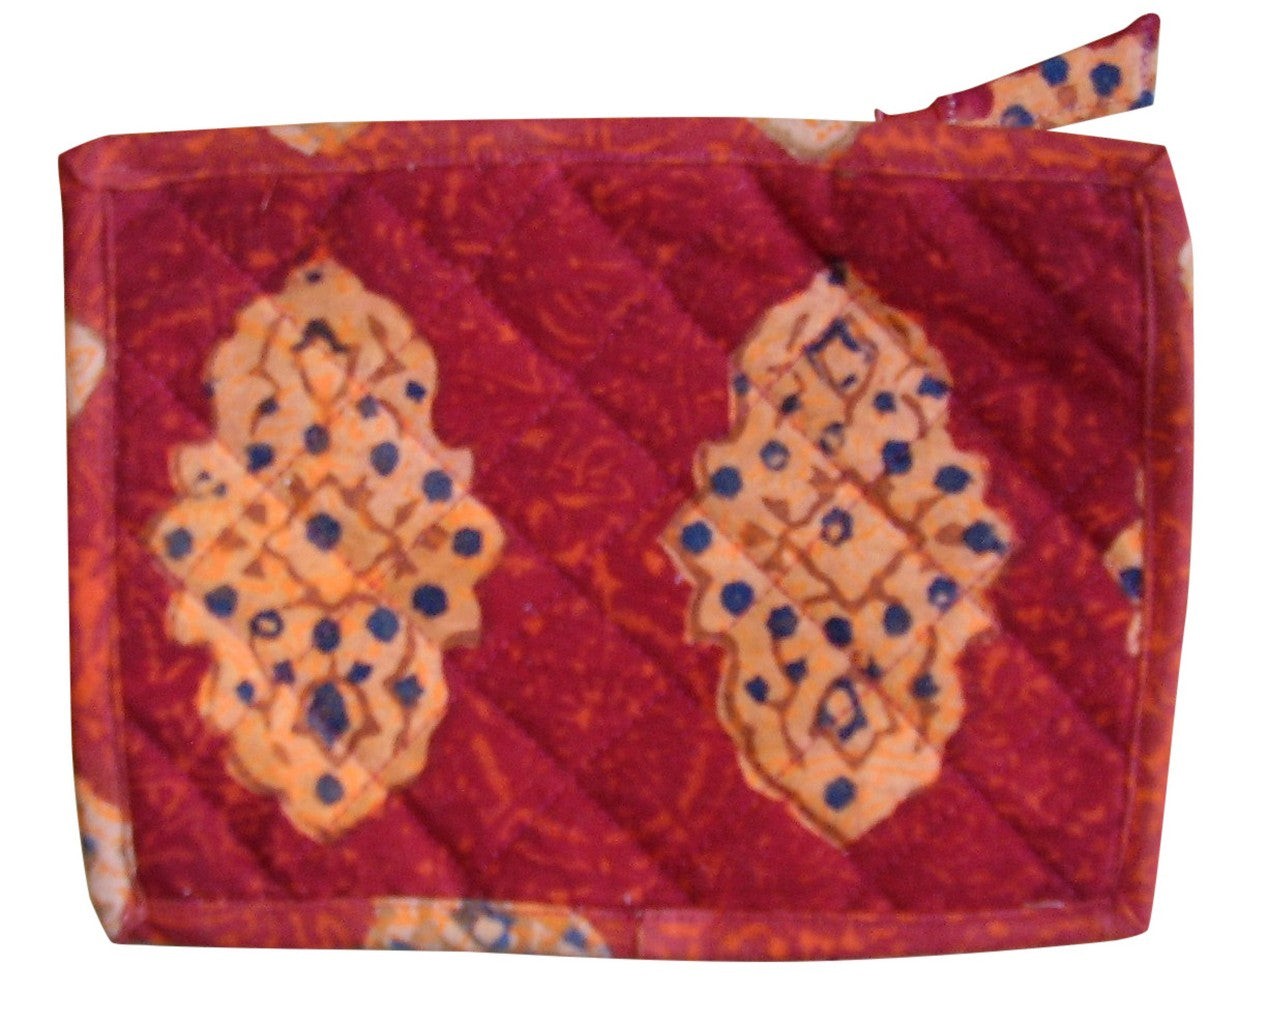 Block Printed Cotton Quilted Kensington Clutch Bag 9 x 7